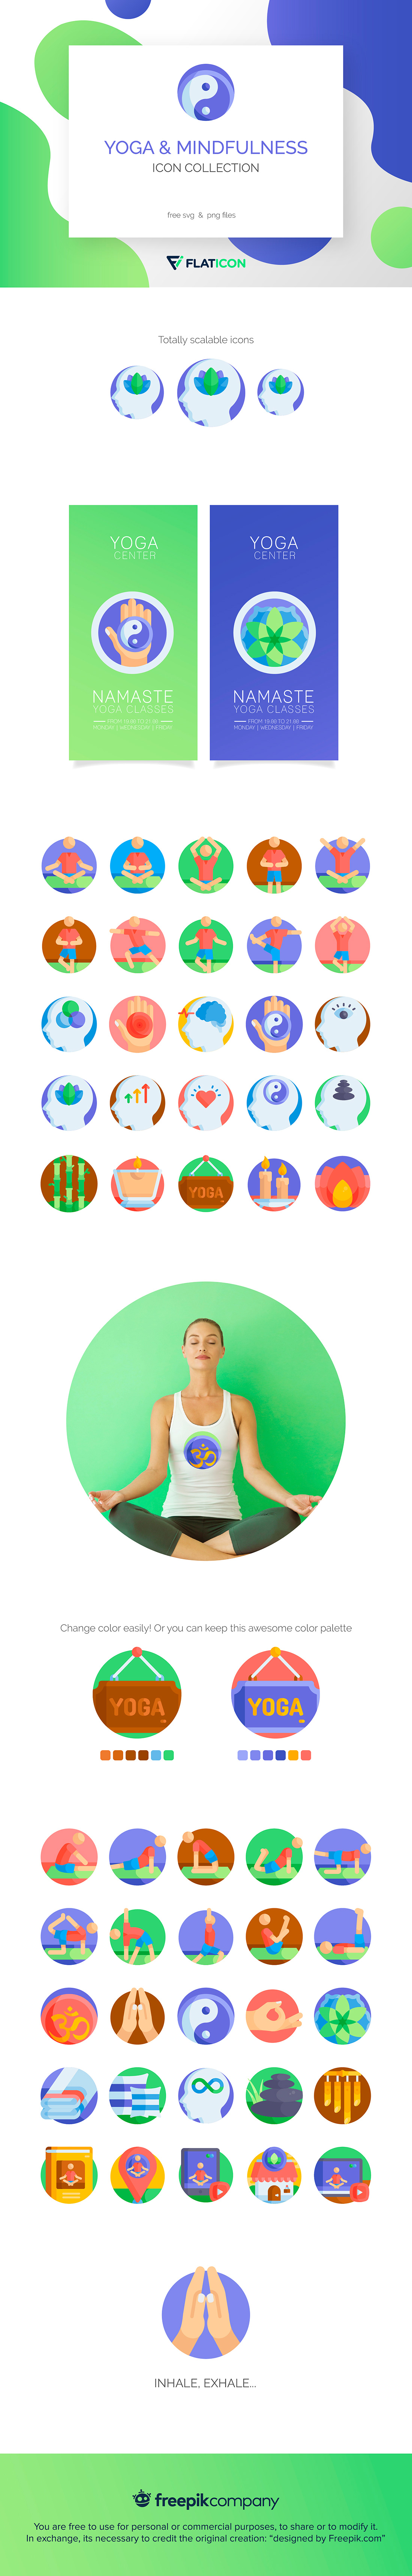 Yoga & Mindfulness Icon Collection